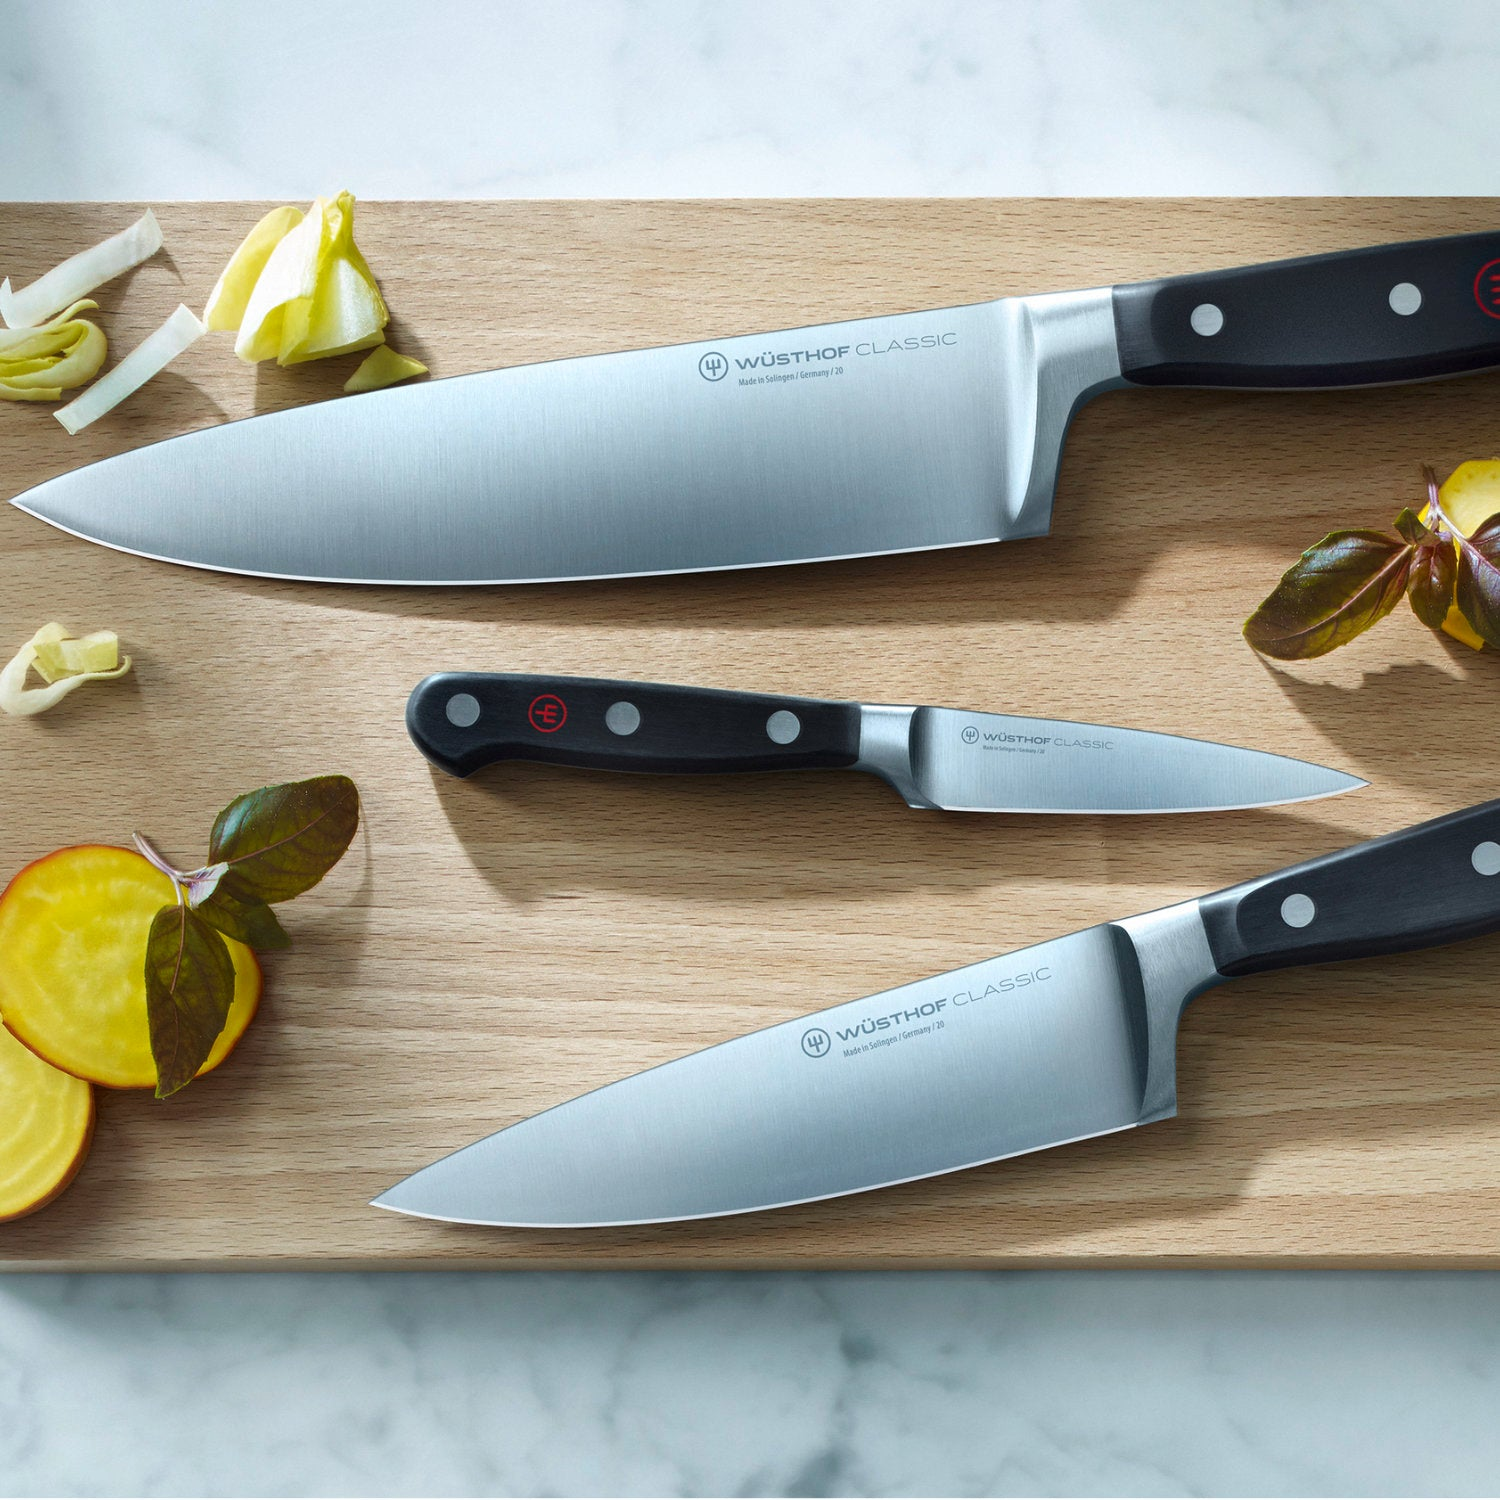 Wusthof Kitchen Knives Made in Solingen, Germany